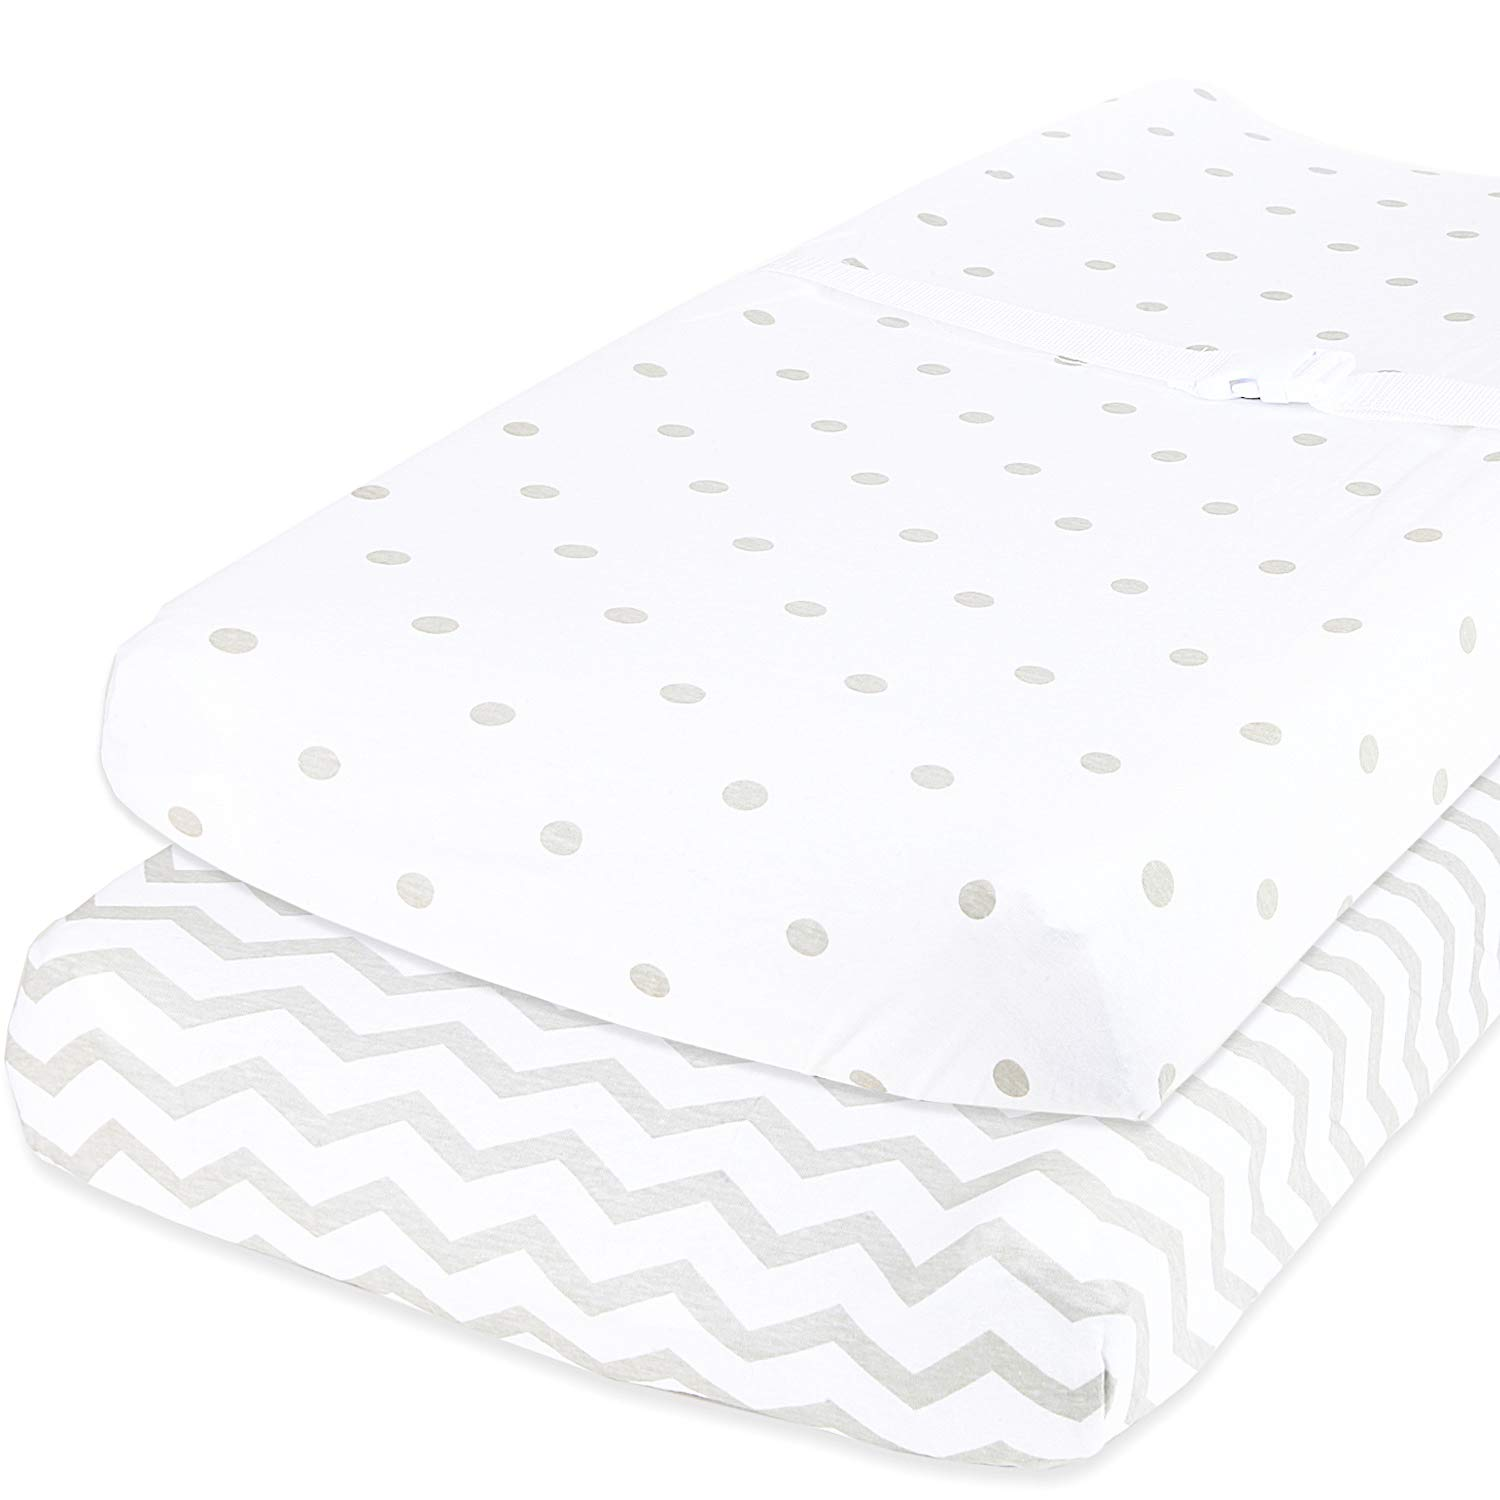 Cuddly Cubs Baby Changing Table Pad Cover Set for Boys & Girls | Soft & Breathable 100% Jersey Cotton | Adorable Unisex Patterns & Fitted Elastic Design | Cute Nursery & Cradle Bedding Sheets 2-Pack Orion Brands